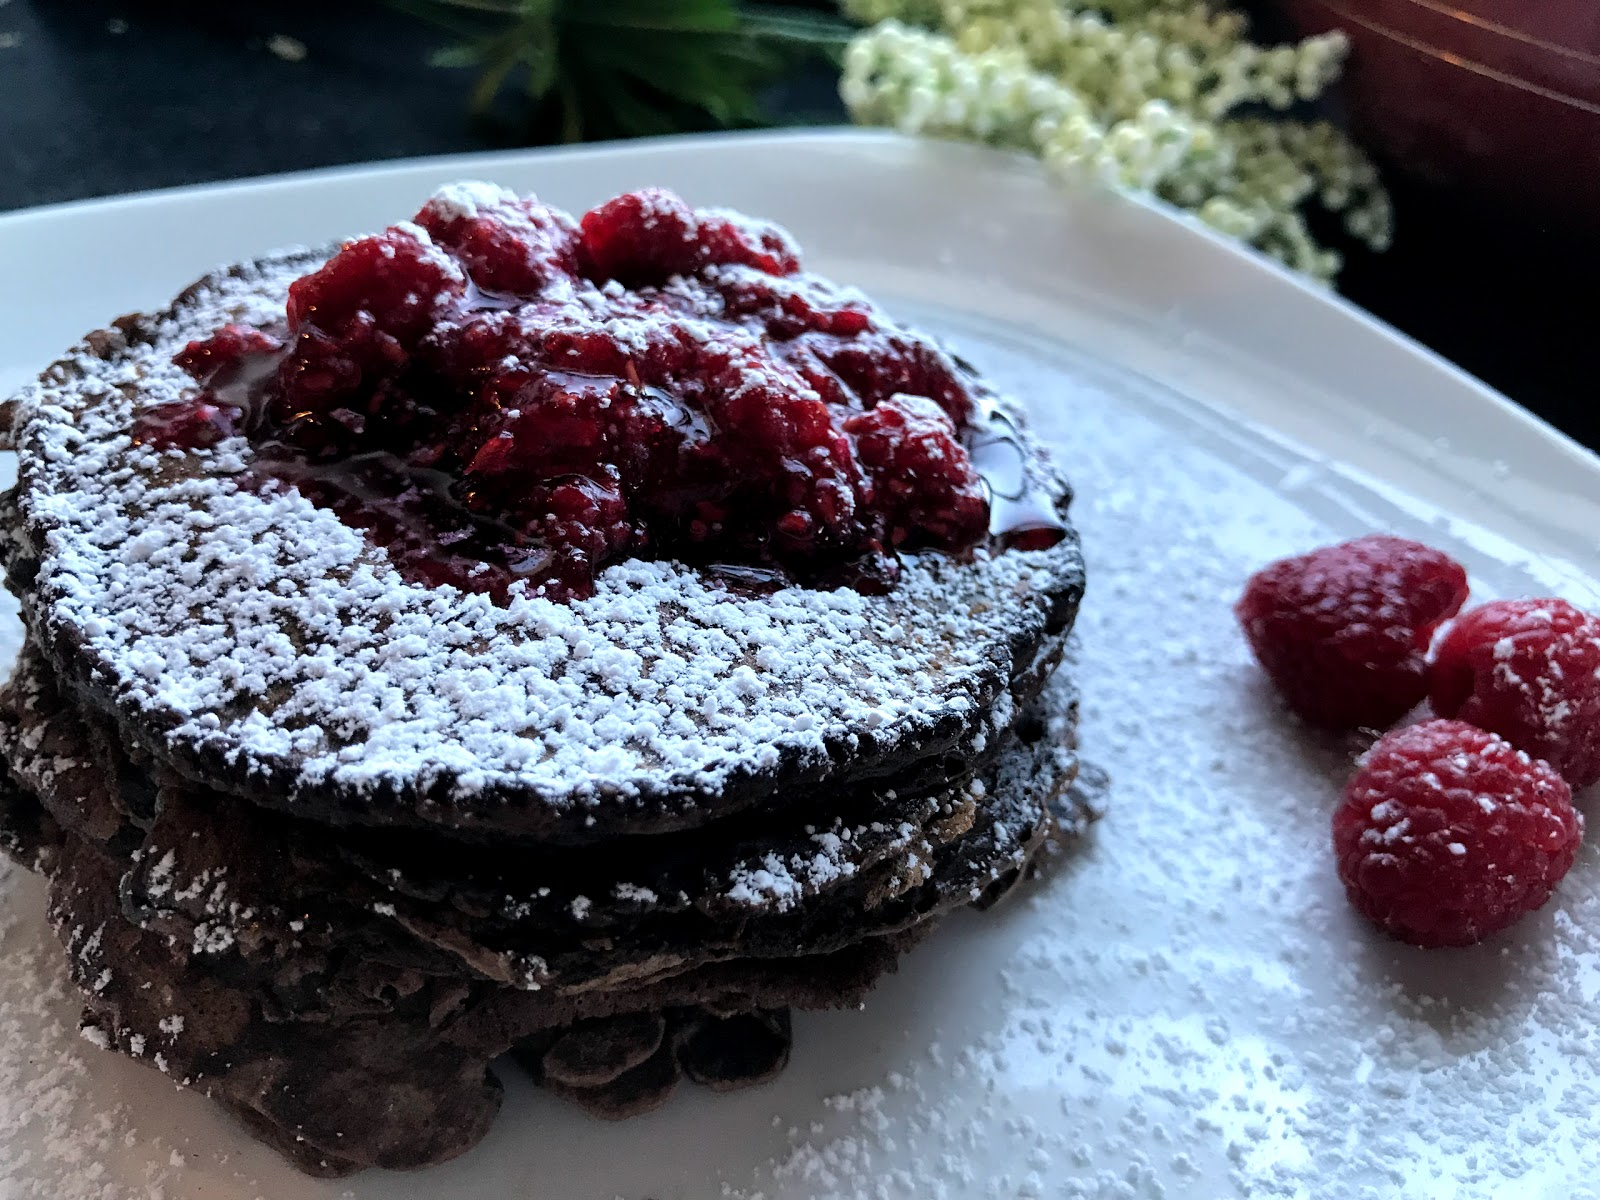 https://www.shobiskitchen.com/2017/11/chocolate-pancakes-with-raspberry-syrup.html